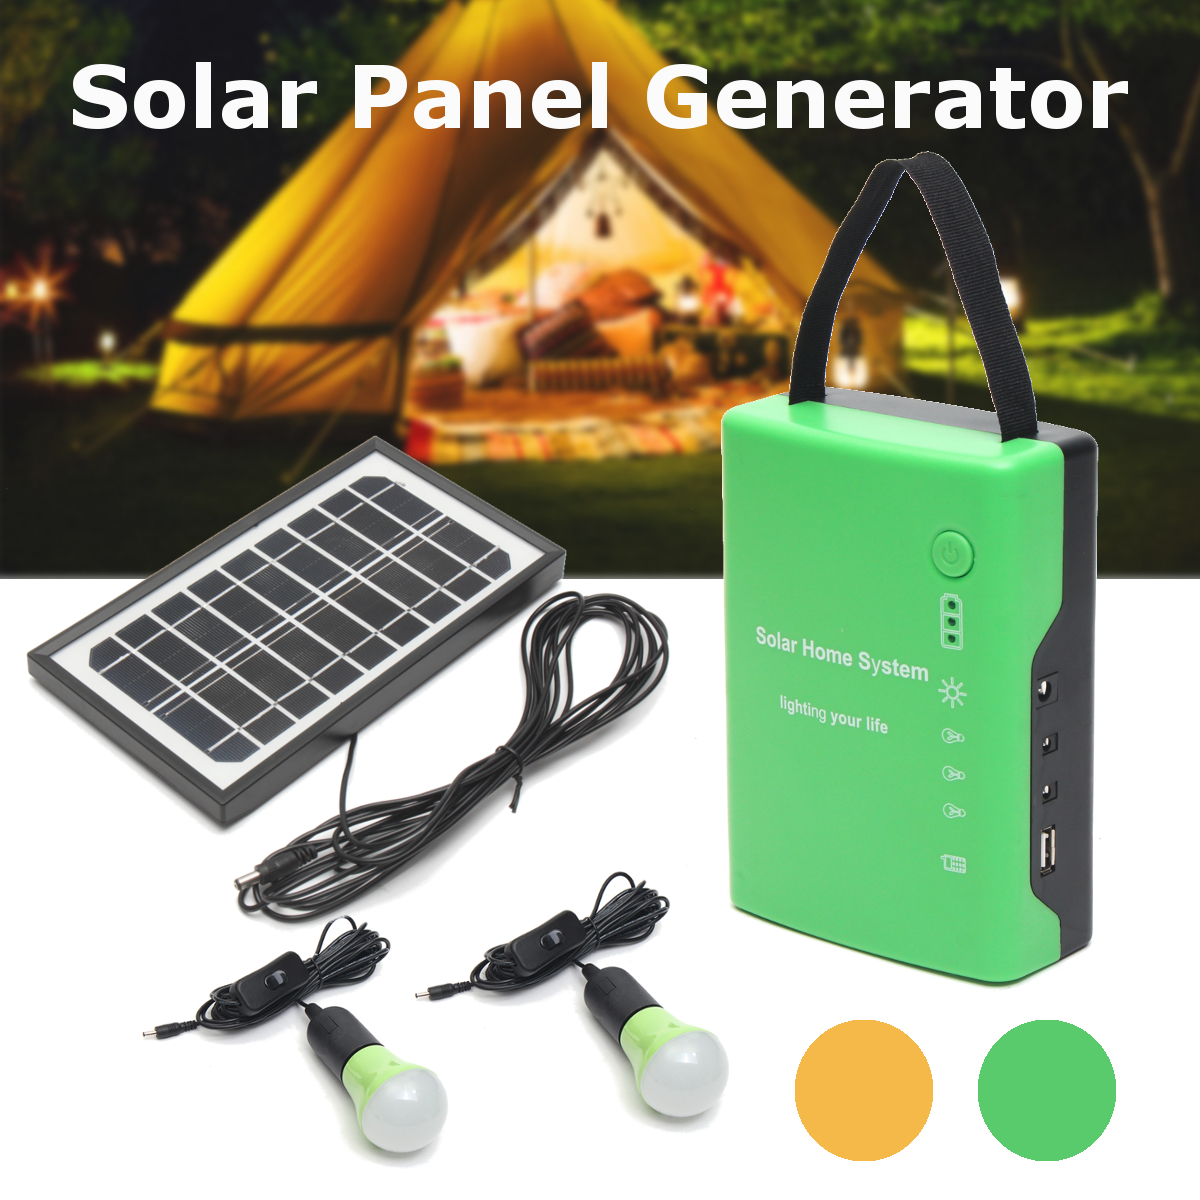 4.5Ah/6V batteries Energy Portable Home Outdoor Solar Panel Power Generator USB Cable Charge Emergency LED Light System4.5Ah/6V batteries Energy Portable Home Outdoor Solar Panel Power Generator USB Cable Charge Emergency LED Light System